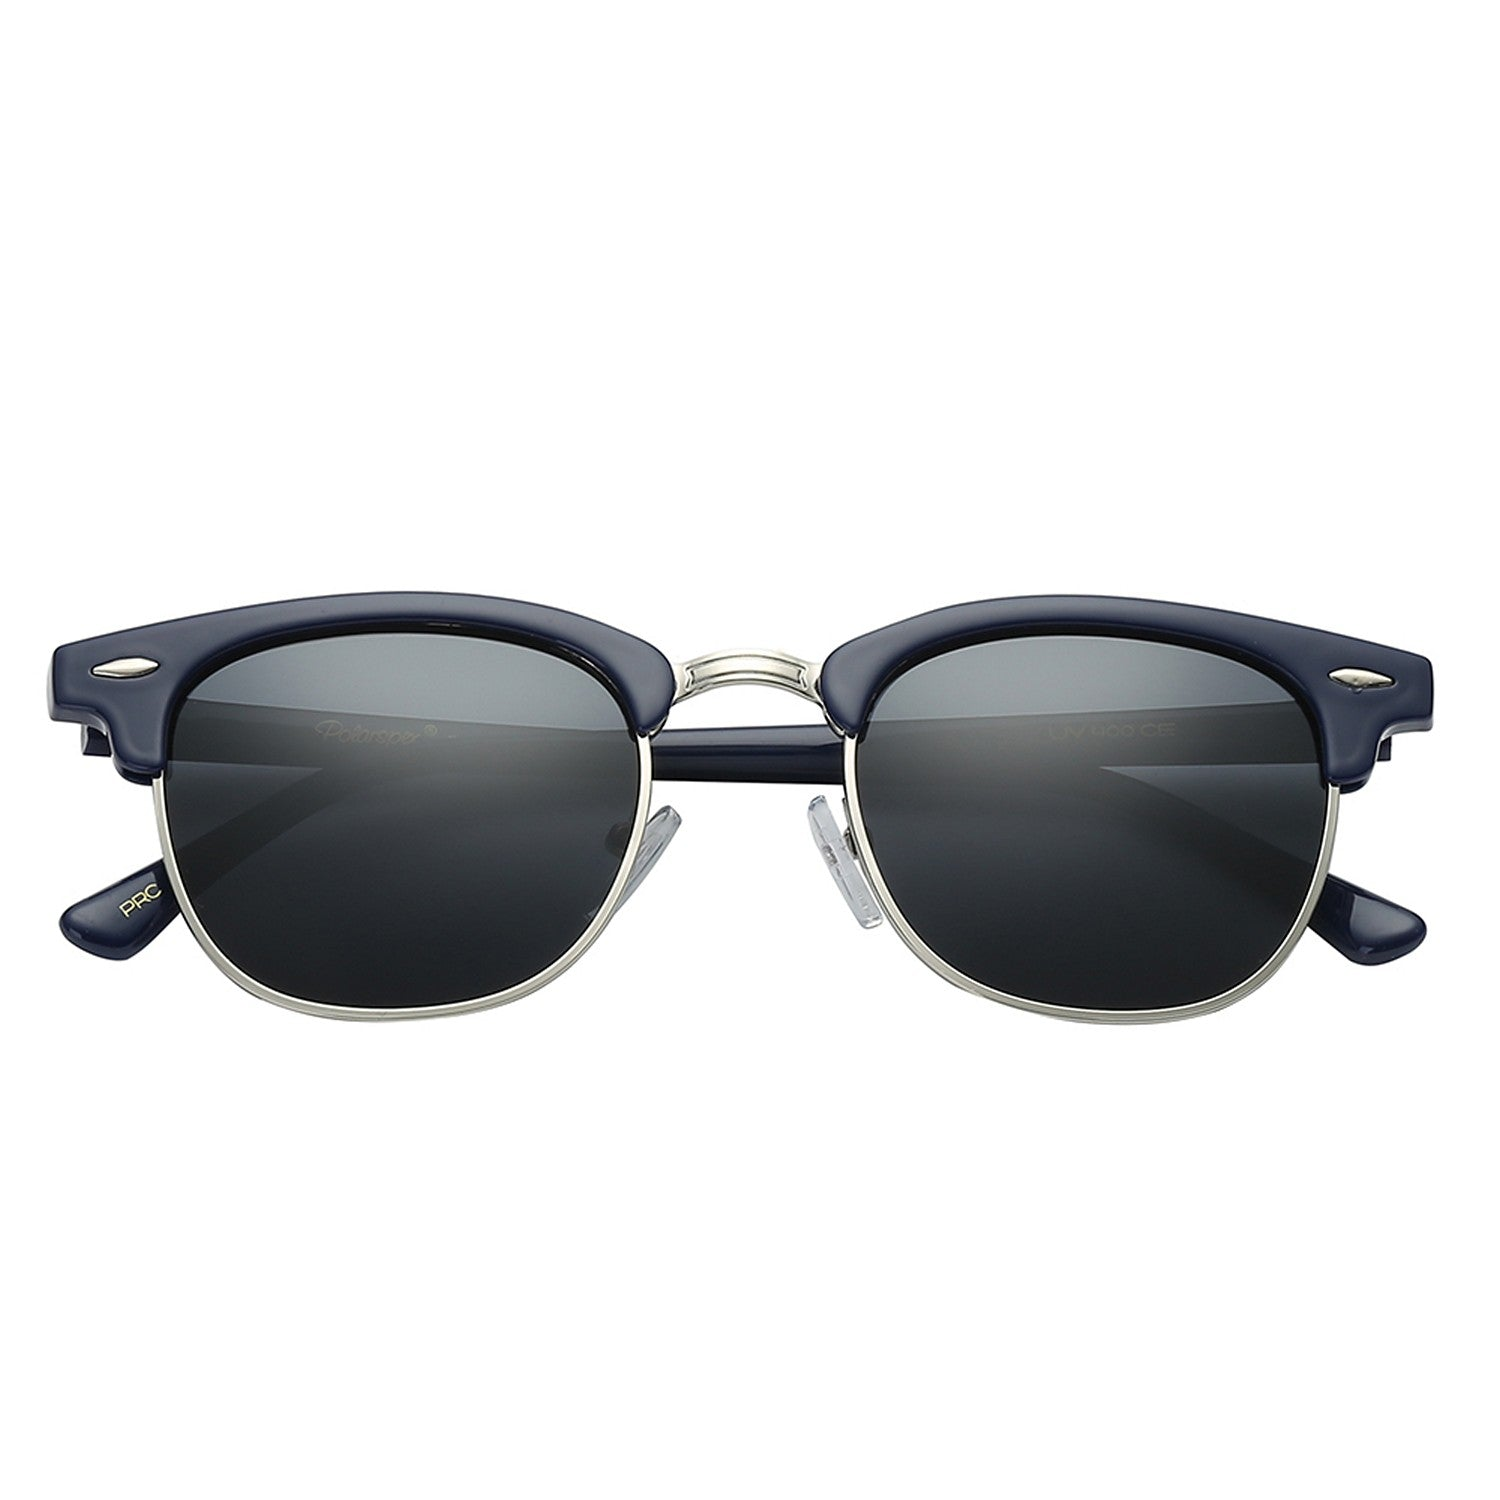 Polarspex Polarized Malcom Half Frame Semi-Rimless Style Unisex Sunglasses with Navy Blue Frames and Smoke Lenses